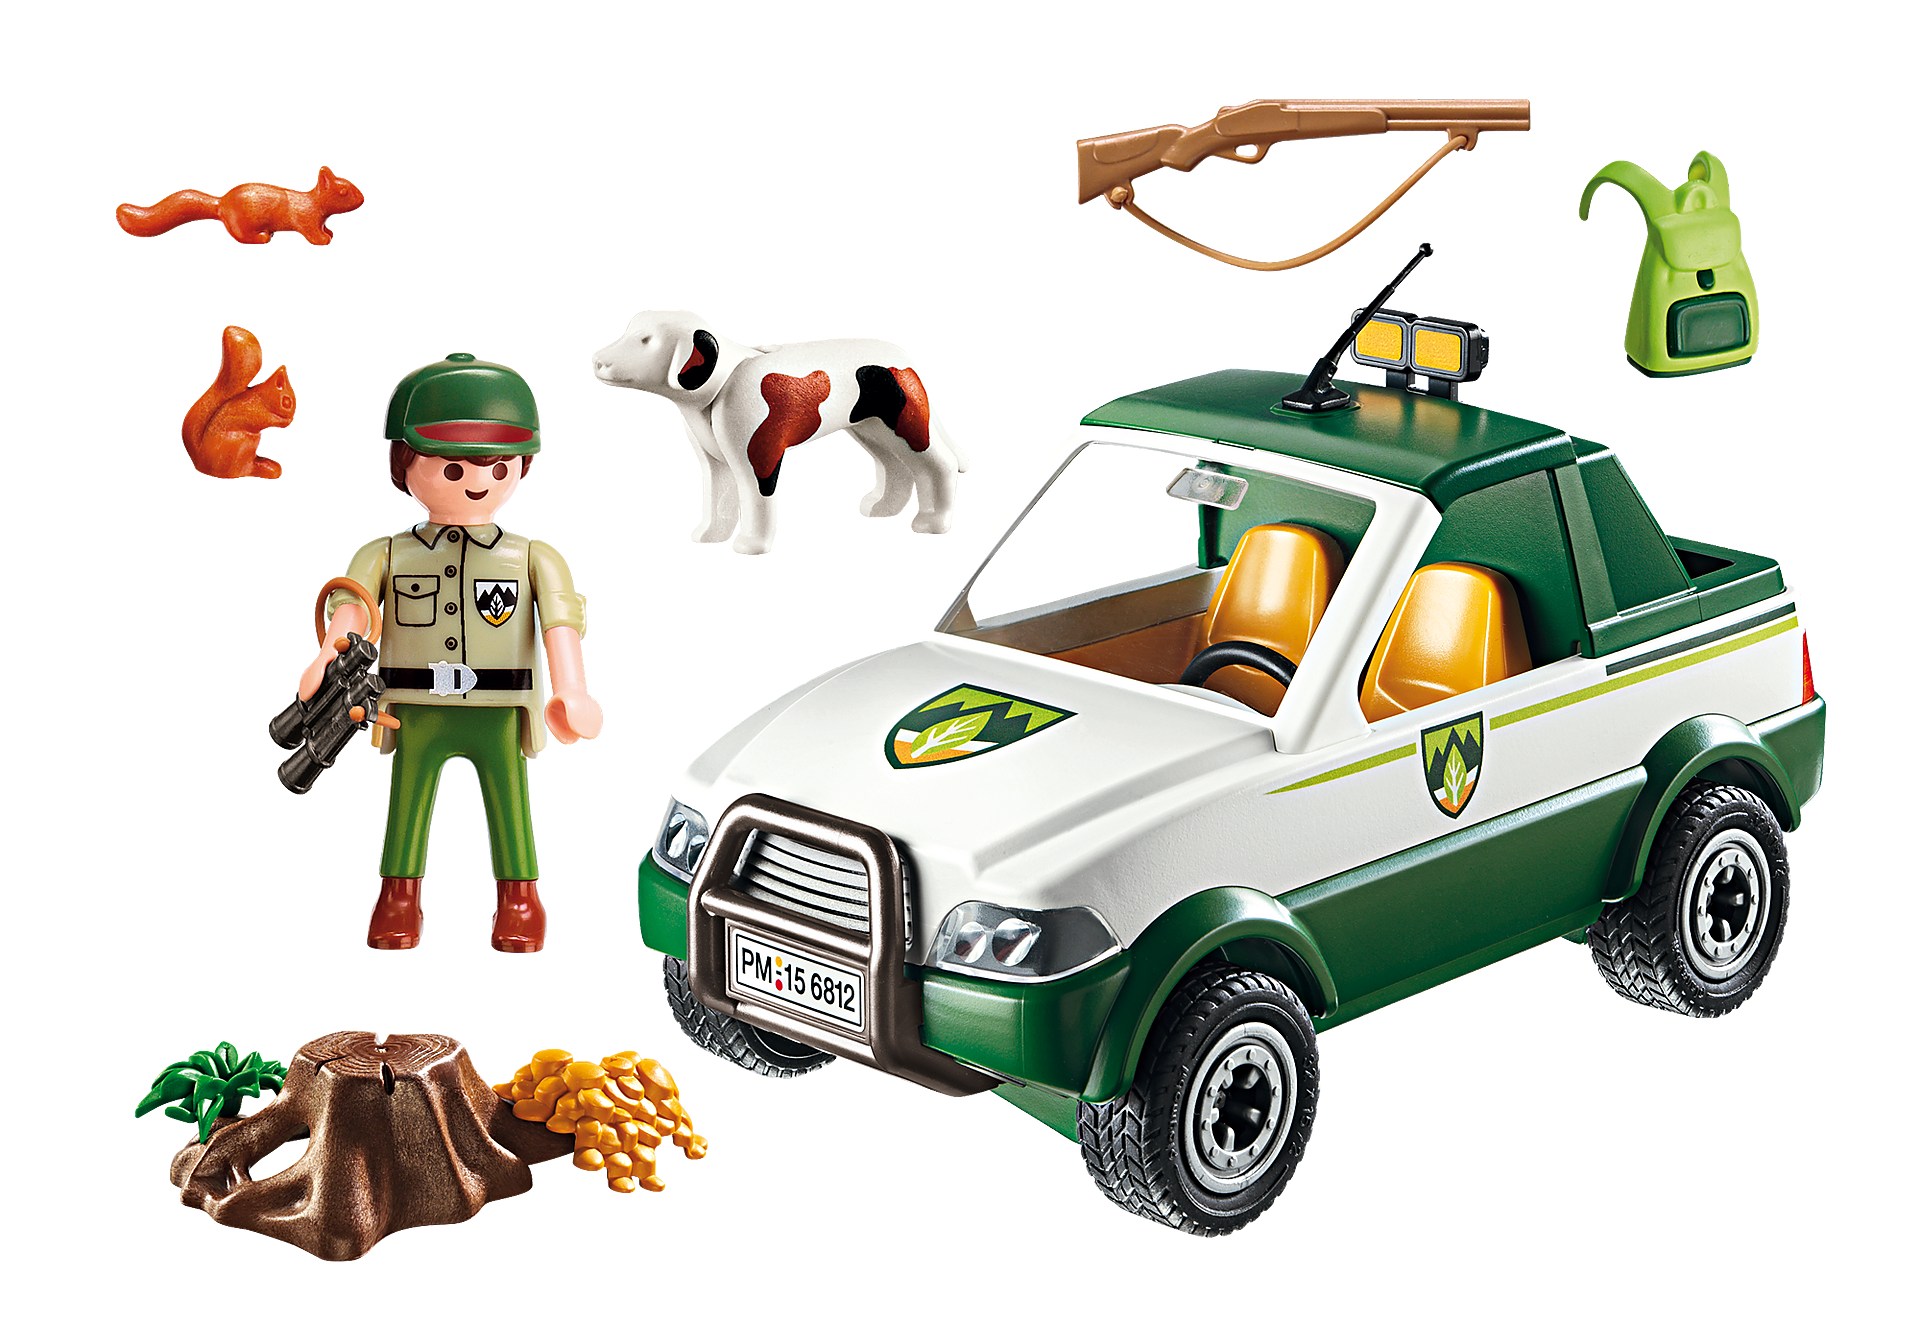 http://media.playmobil.com/i/playmobil/6812_product_box_back/Förster-Pickup